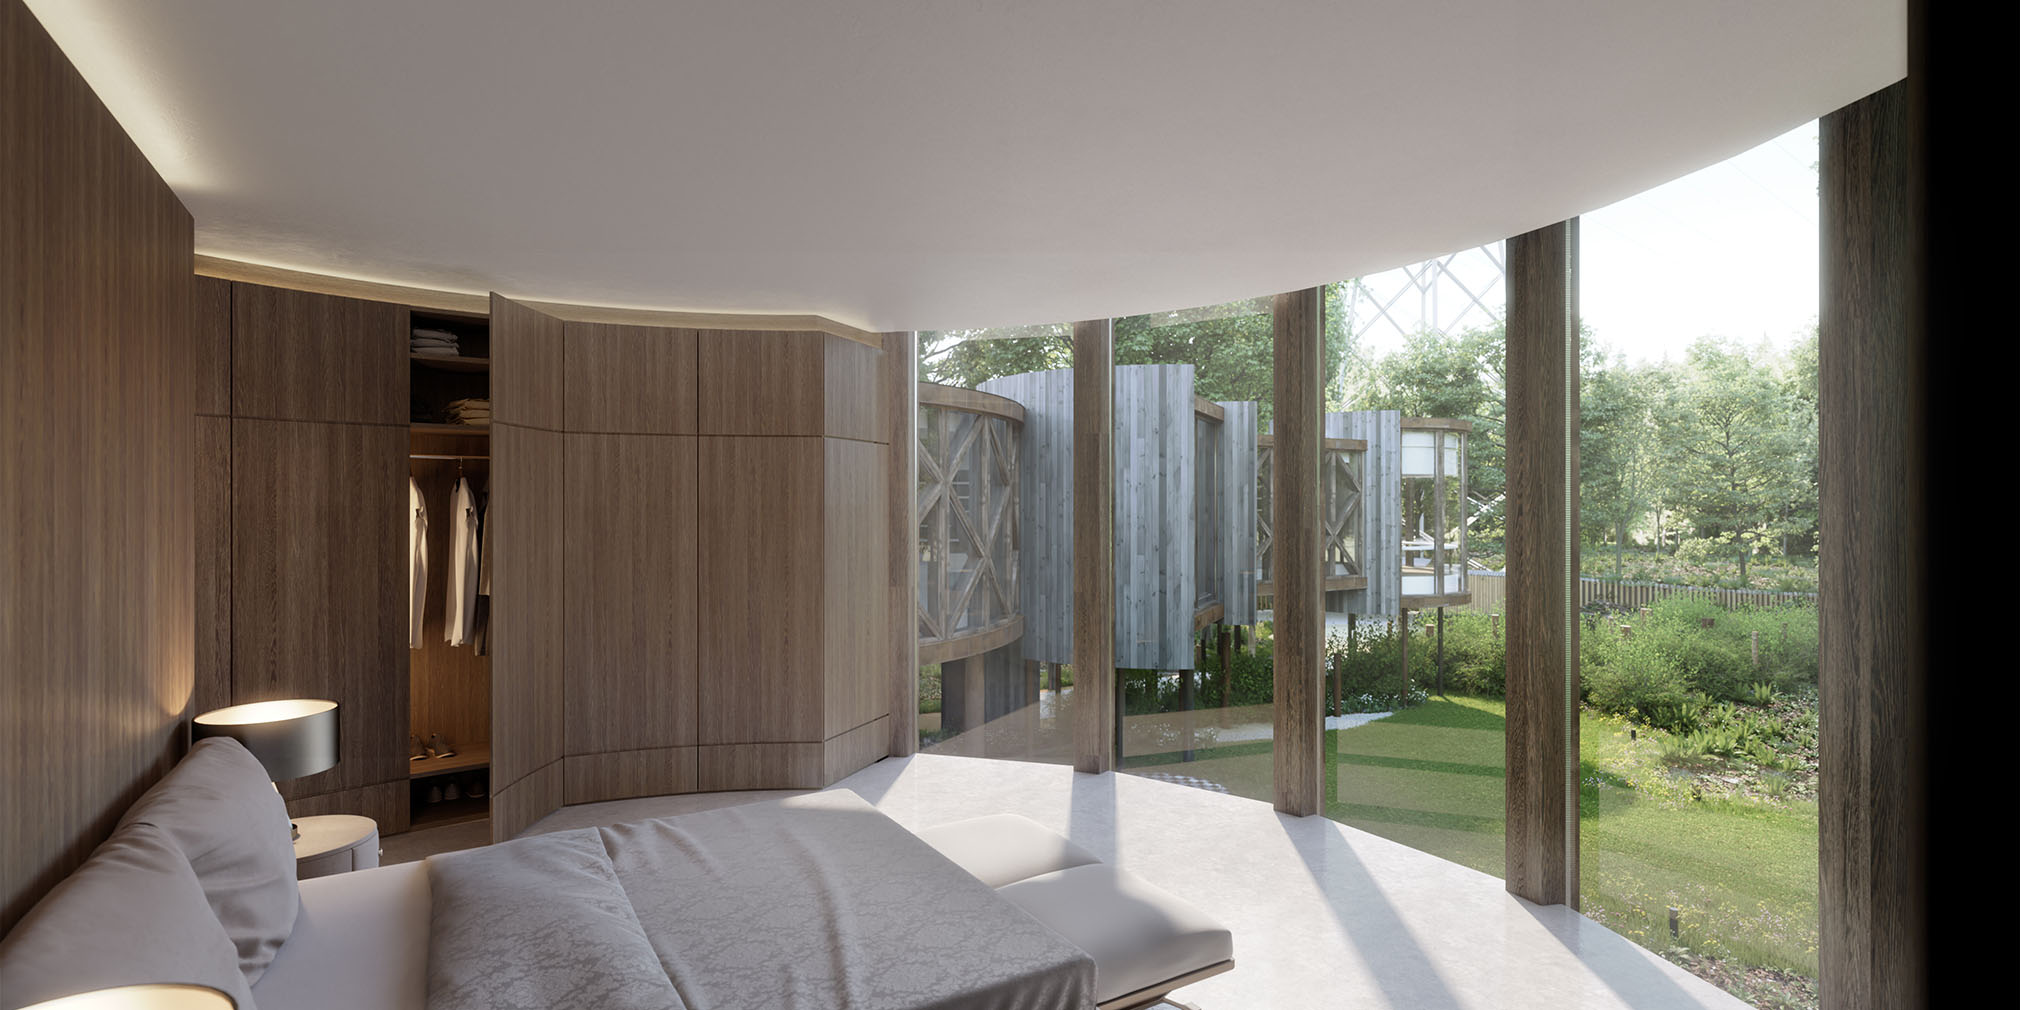 Interior visualisation of unbuilt treehouse home with planning permission hits the market in Ewes, Gloucestershire